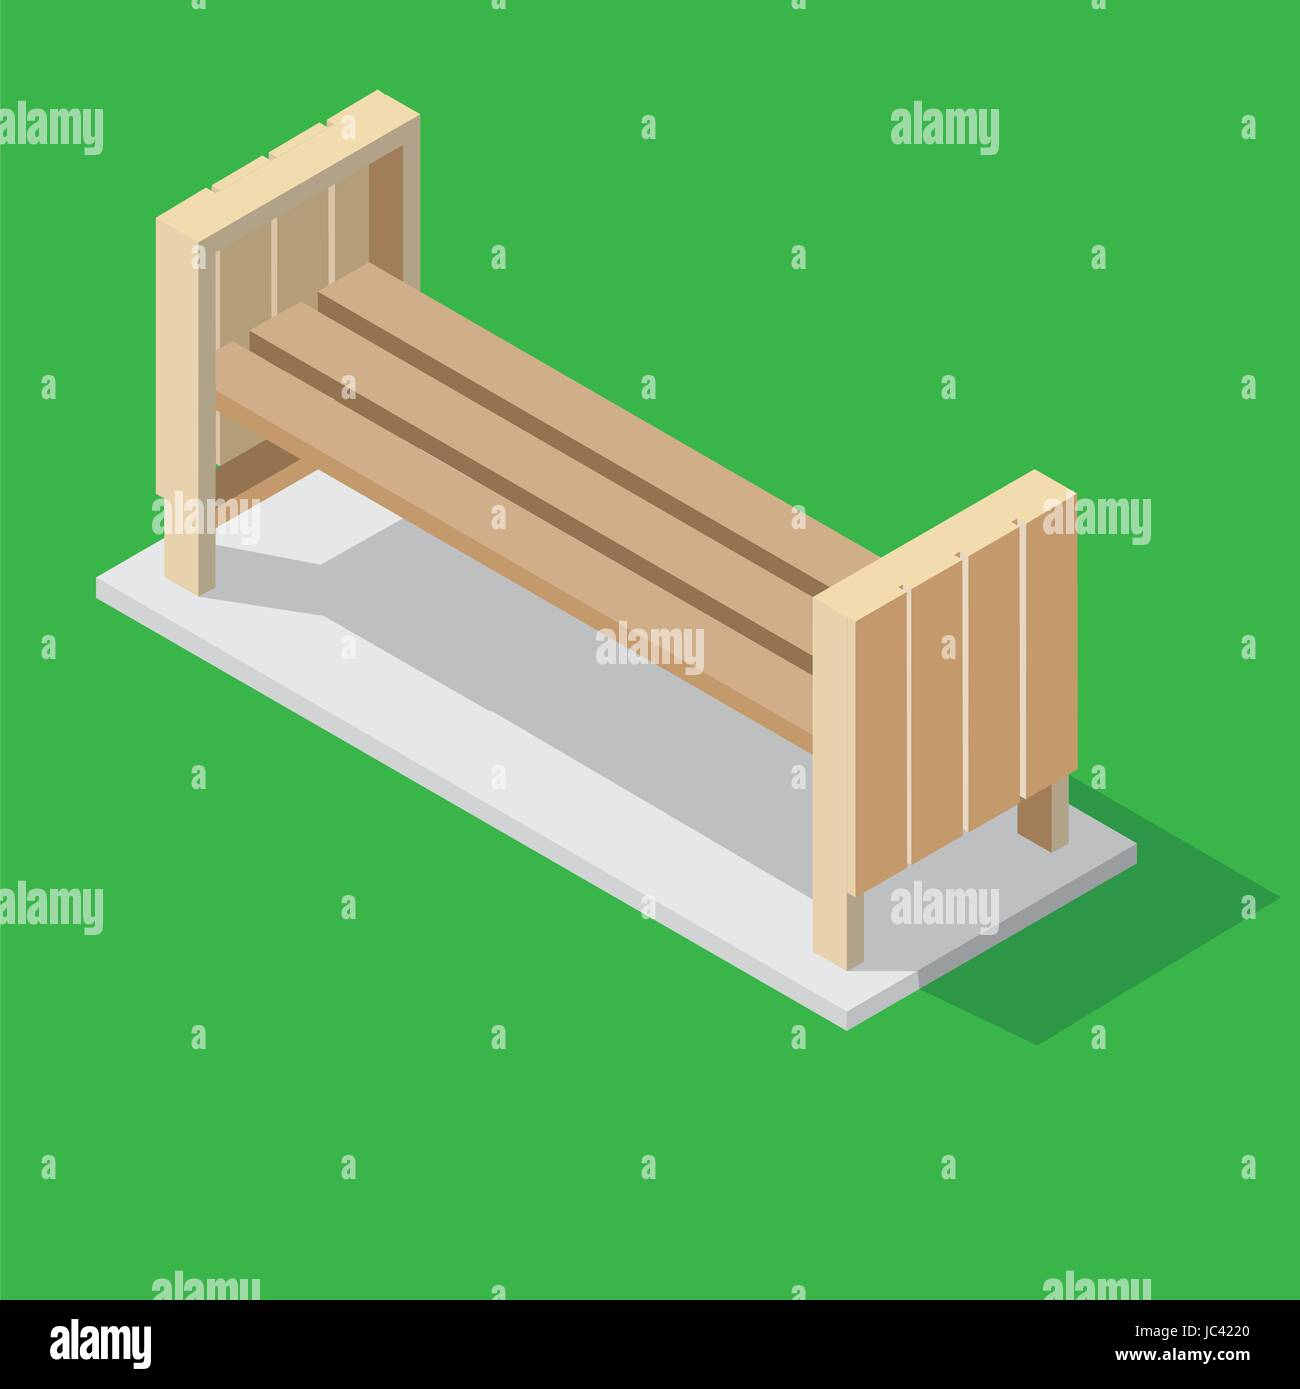 Isolated wooden benches for the Park. Isometric style on green background. Decorative city element - Vector illustration. - Stock Vector